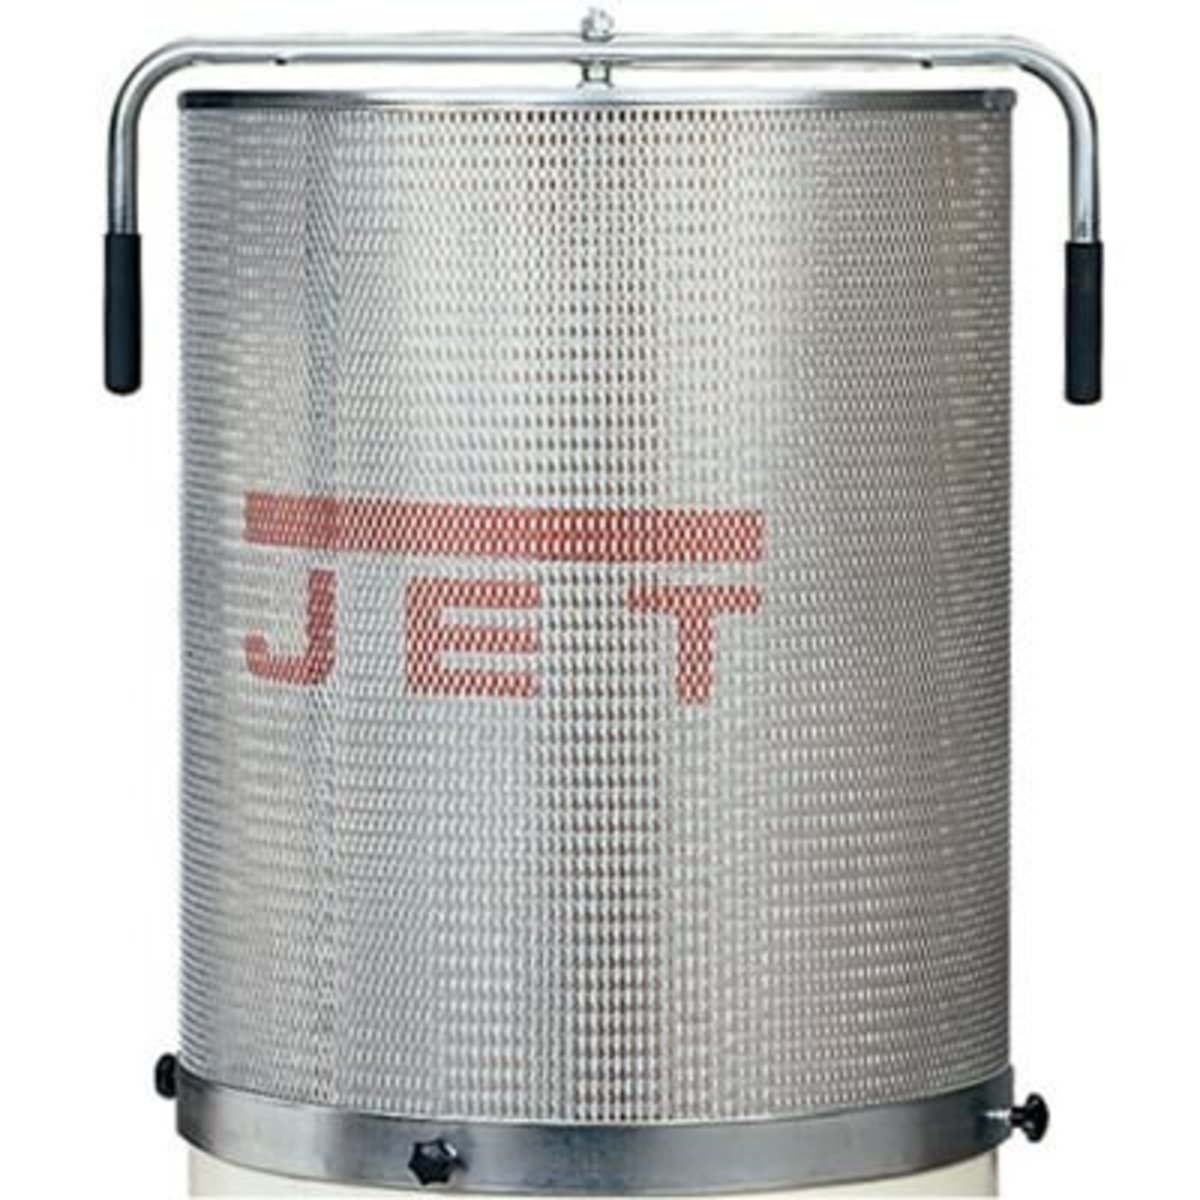 Jet Canister Filter For Dc 1100 Model Dust Collectors